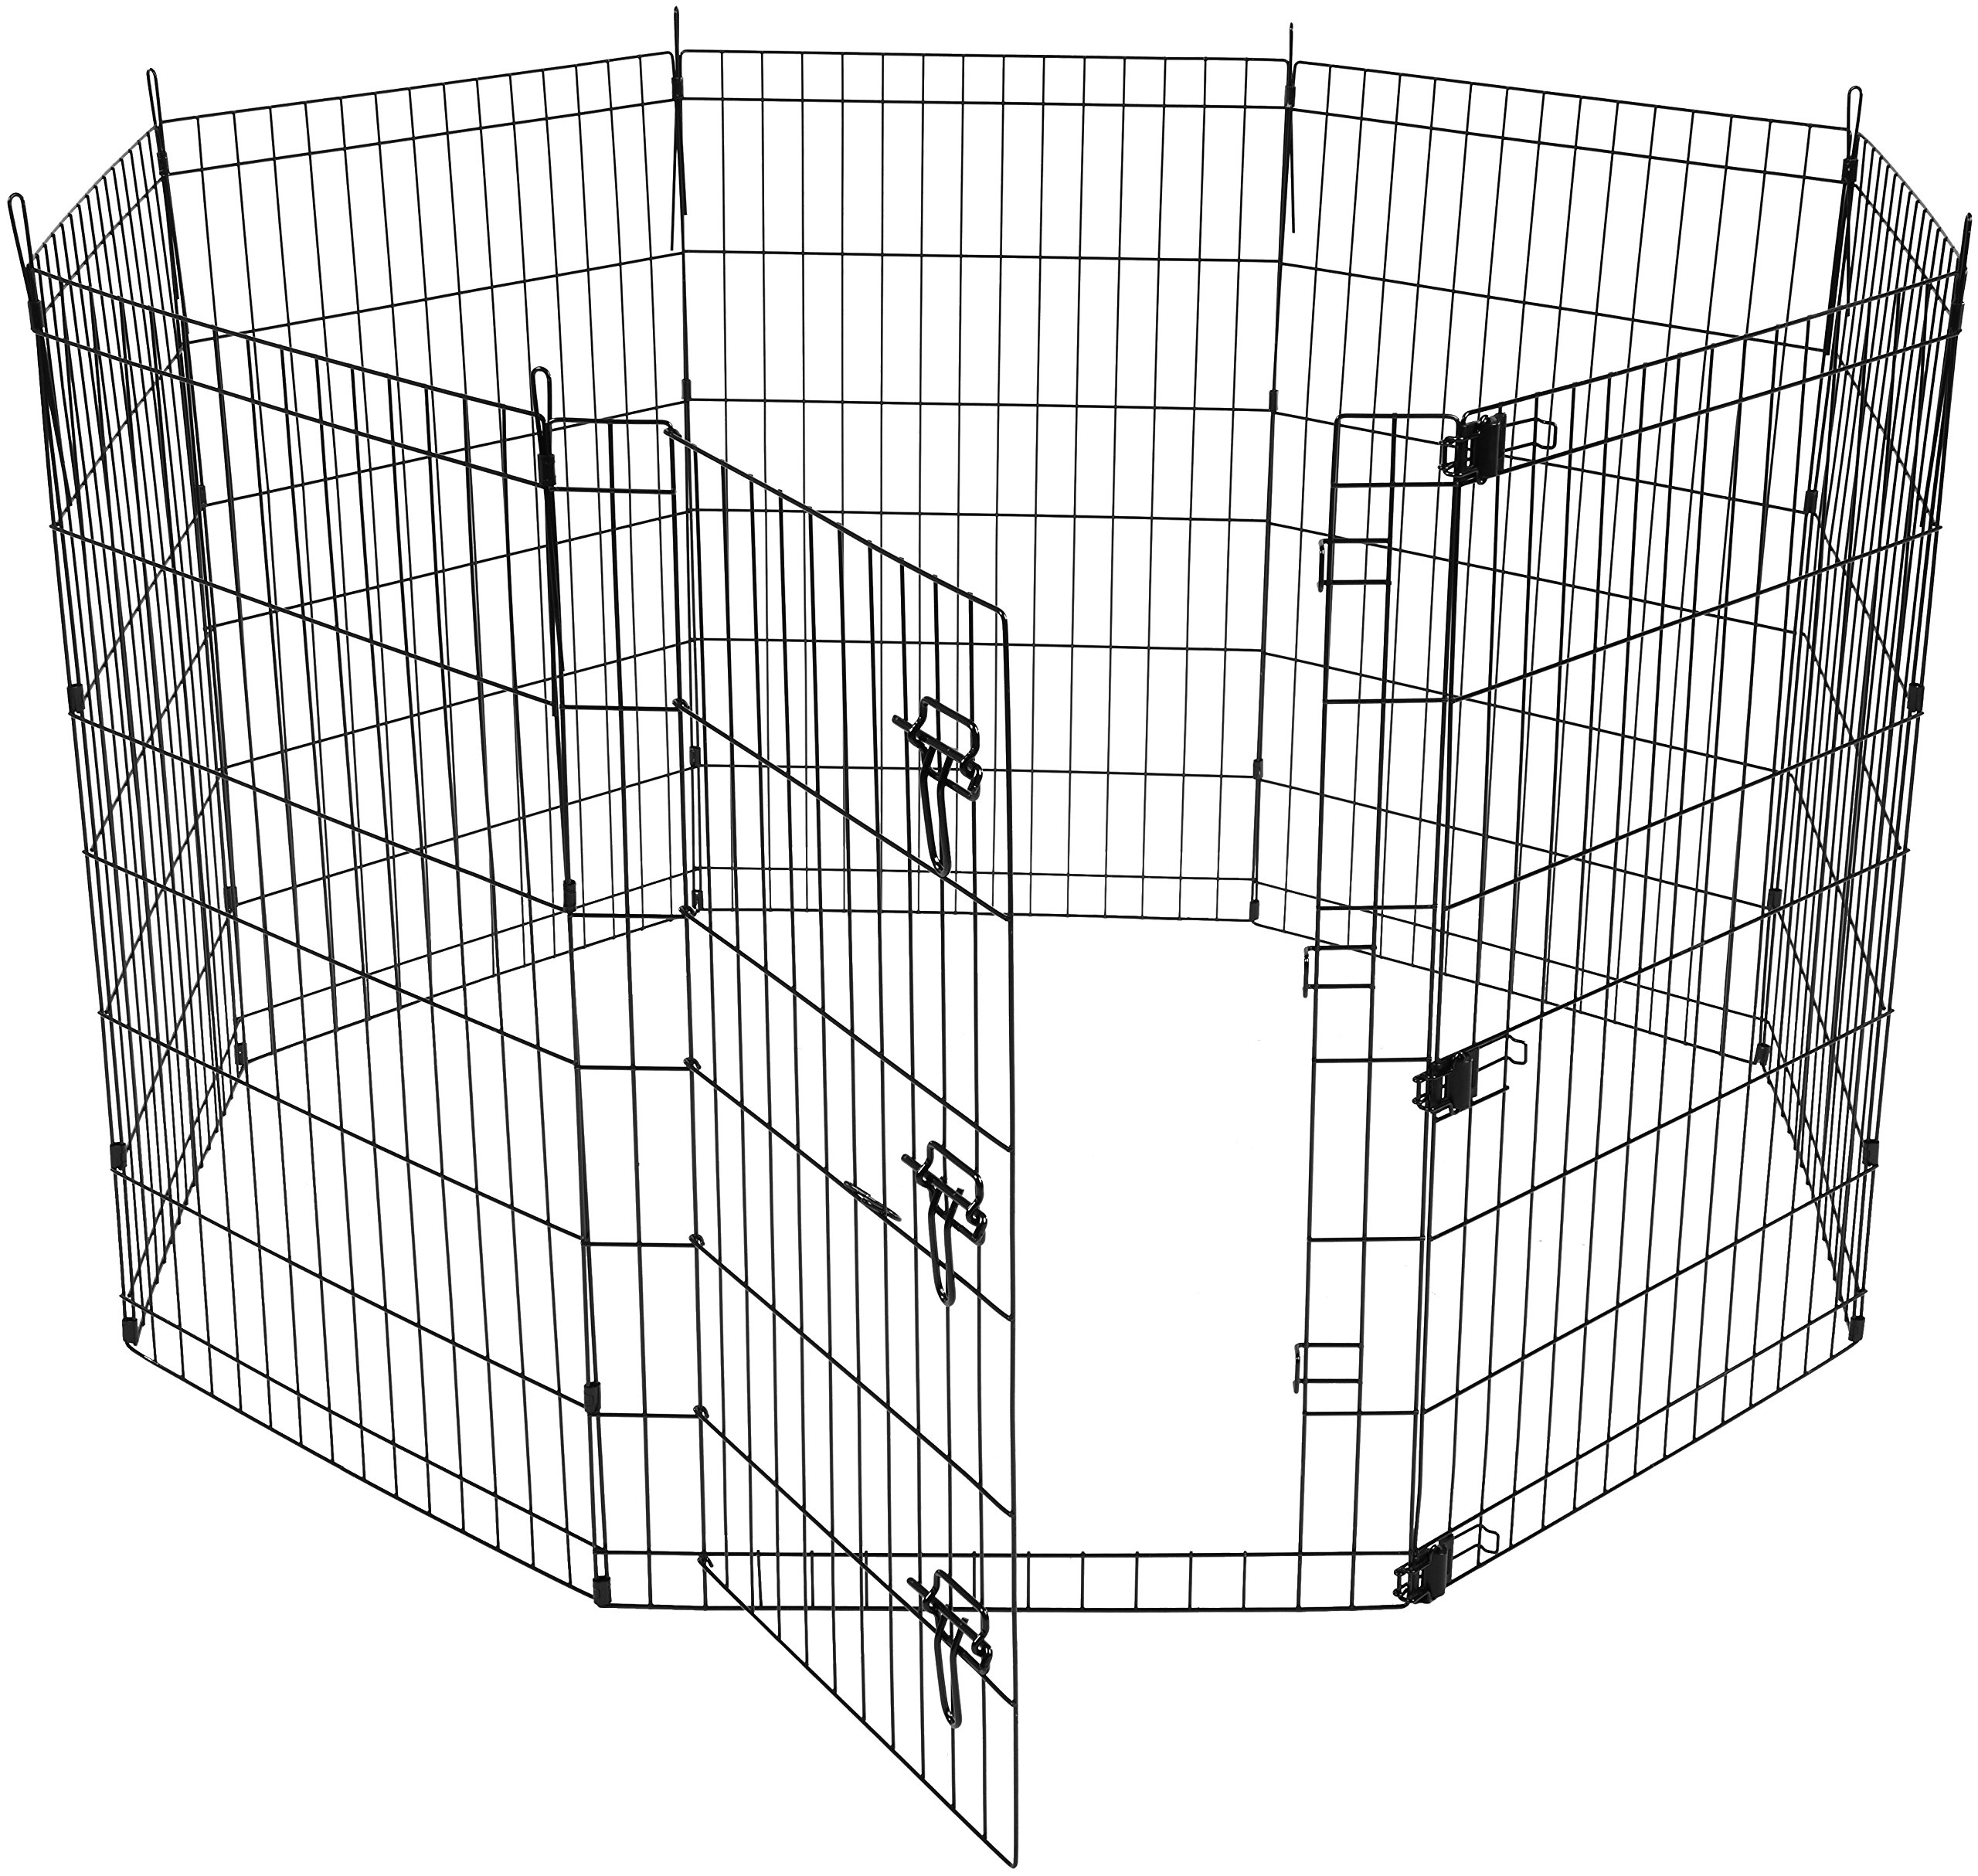 AmazonBasics Foldable Metal Pet Exercise and Playpen with Door, 36'' by AmazonBasics (Image #3)